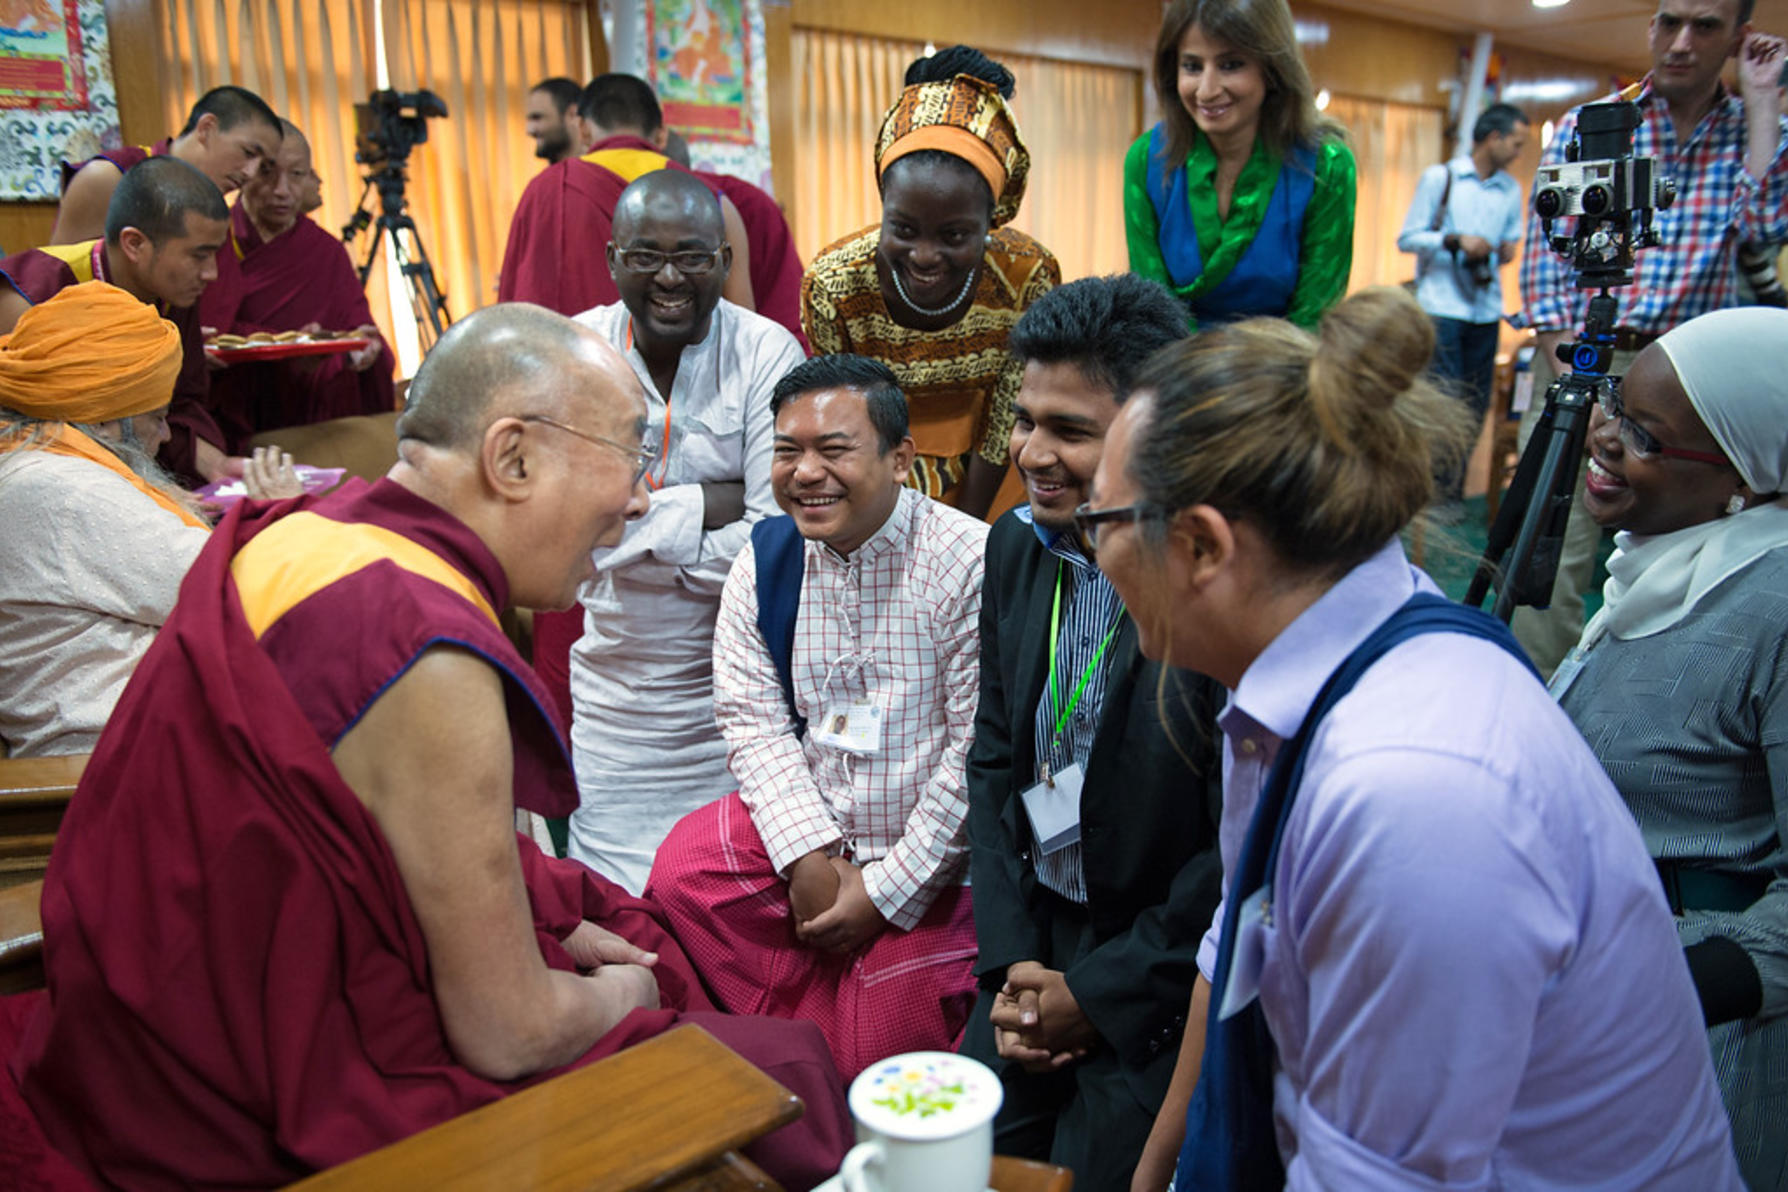 Dalai Lama and generation change fellows